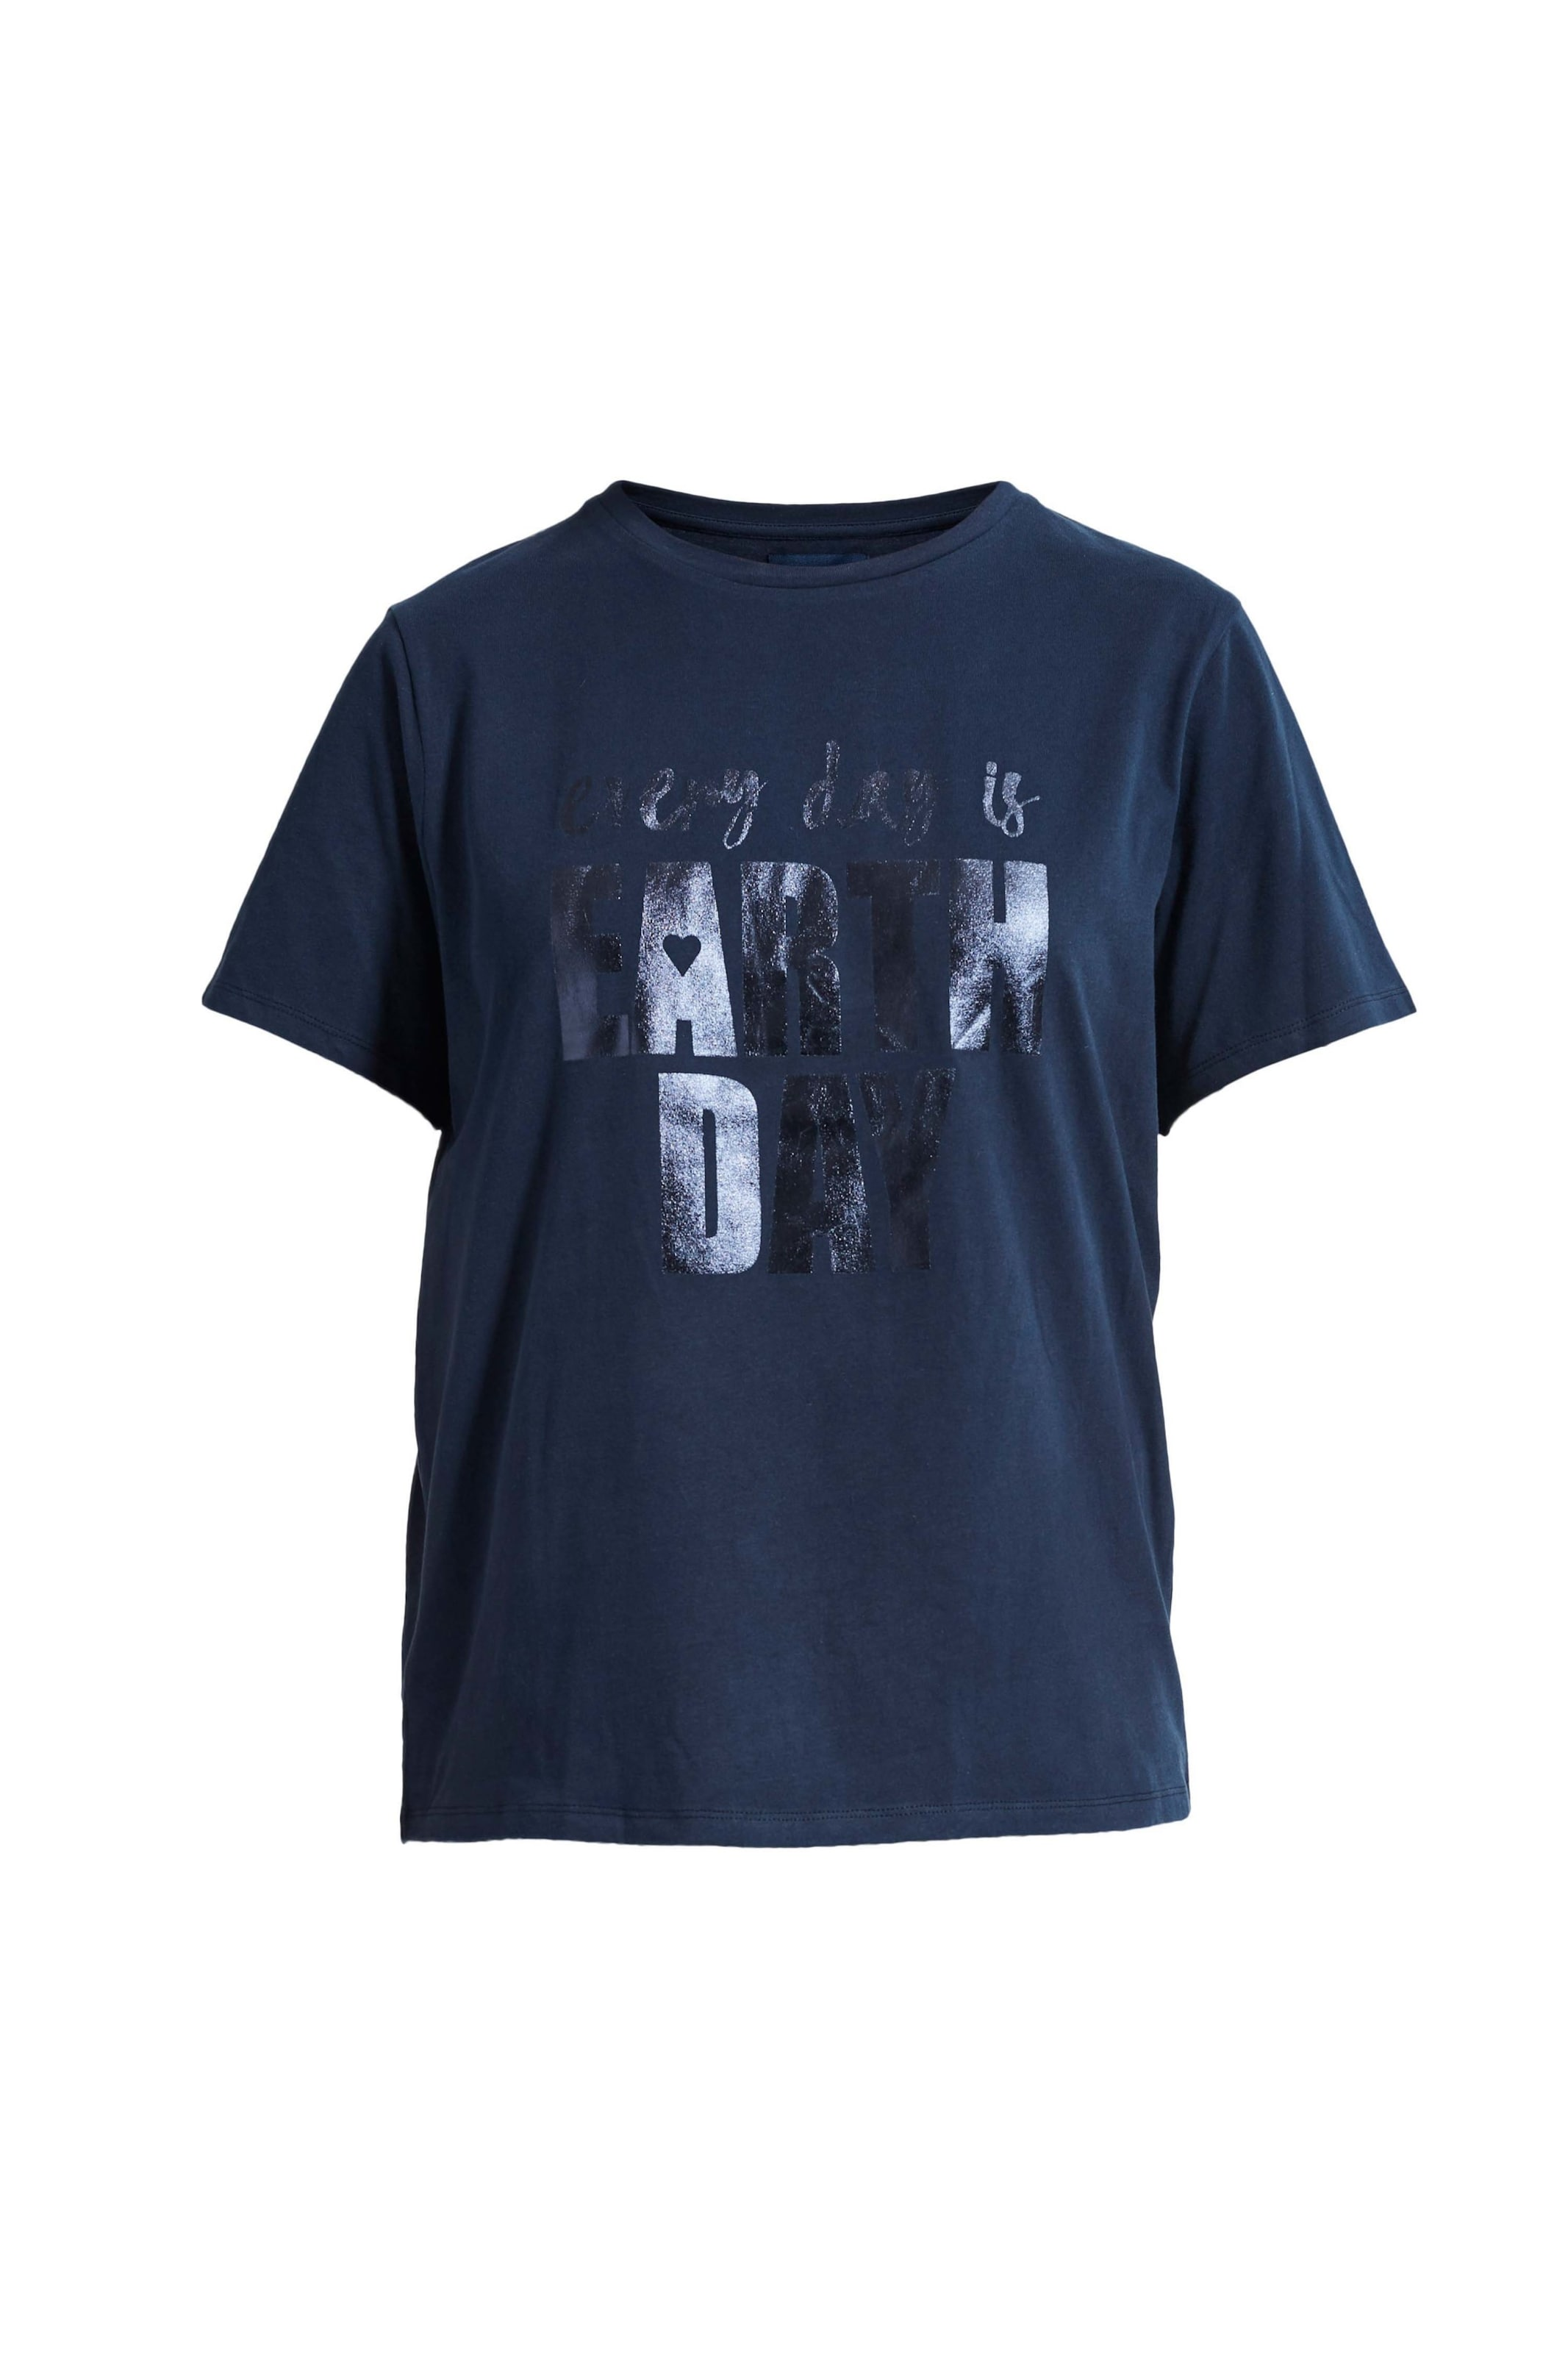 In T 'lovely NavySilber Day' shirt Laurie OXuwkilPZT